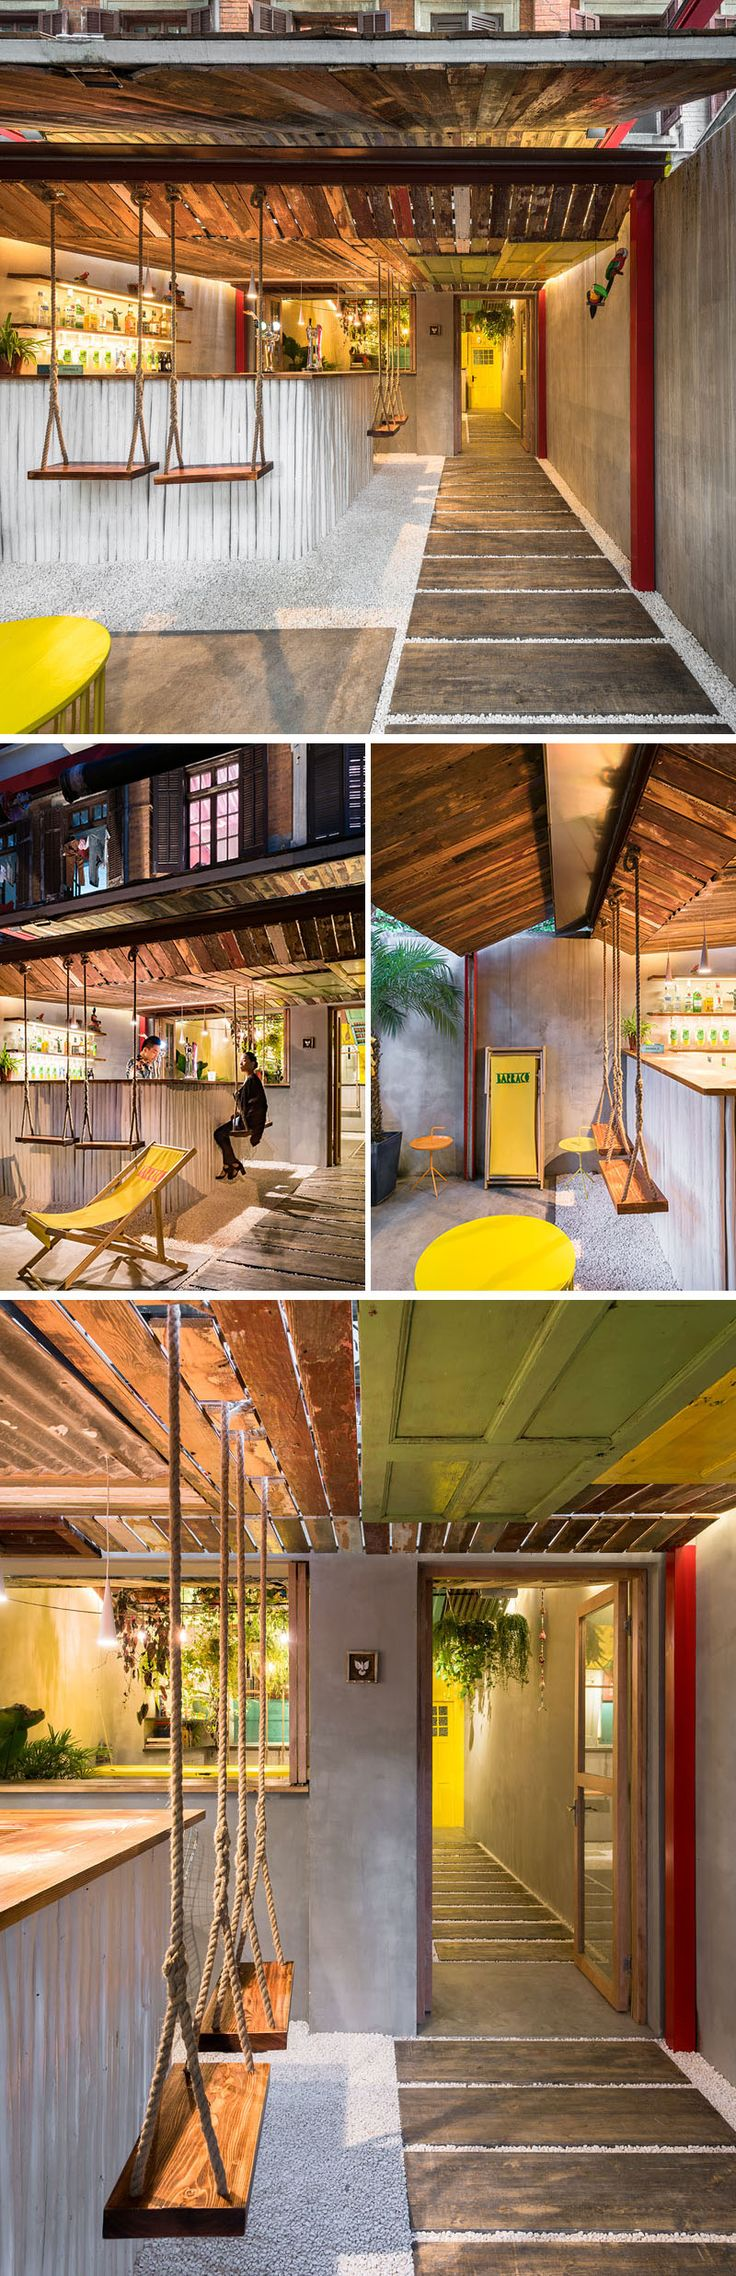 Q&A Architecture Design Research have designed Barraco, a new bar in Shanghai, China, that features recycled materials, swings and a hanging table. #BarDesign #InteriorDesign